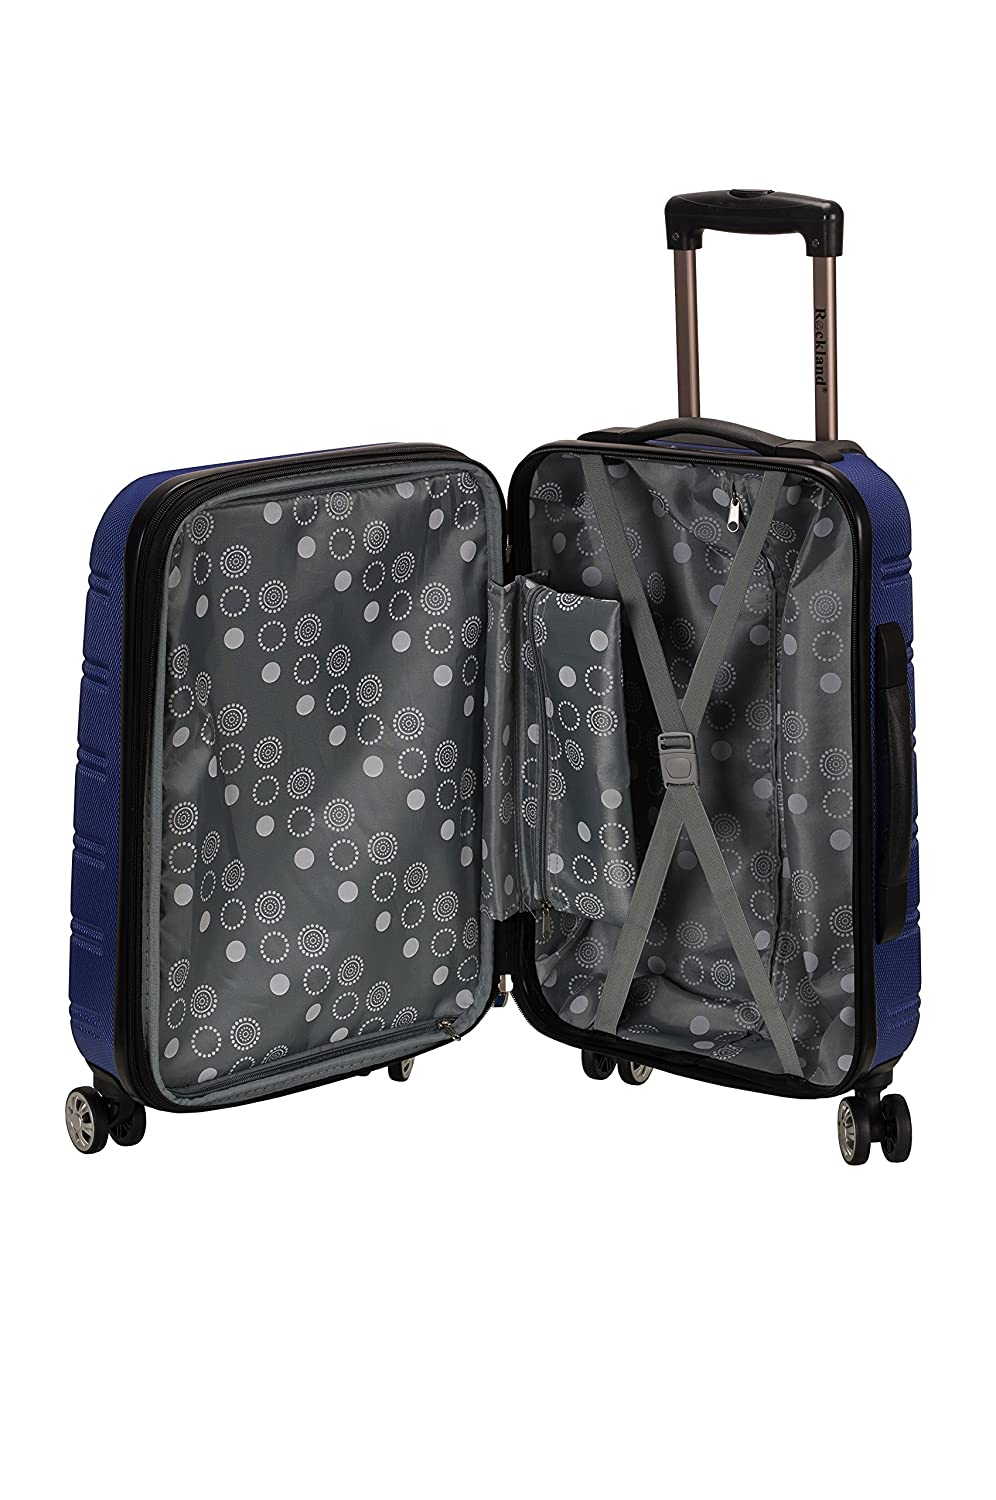 Blue Rockland Luggage 20 Inch 28 Inch 2 Piece Expandable Spinner Set One Size Fox Luggage F225